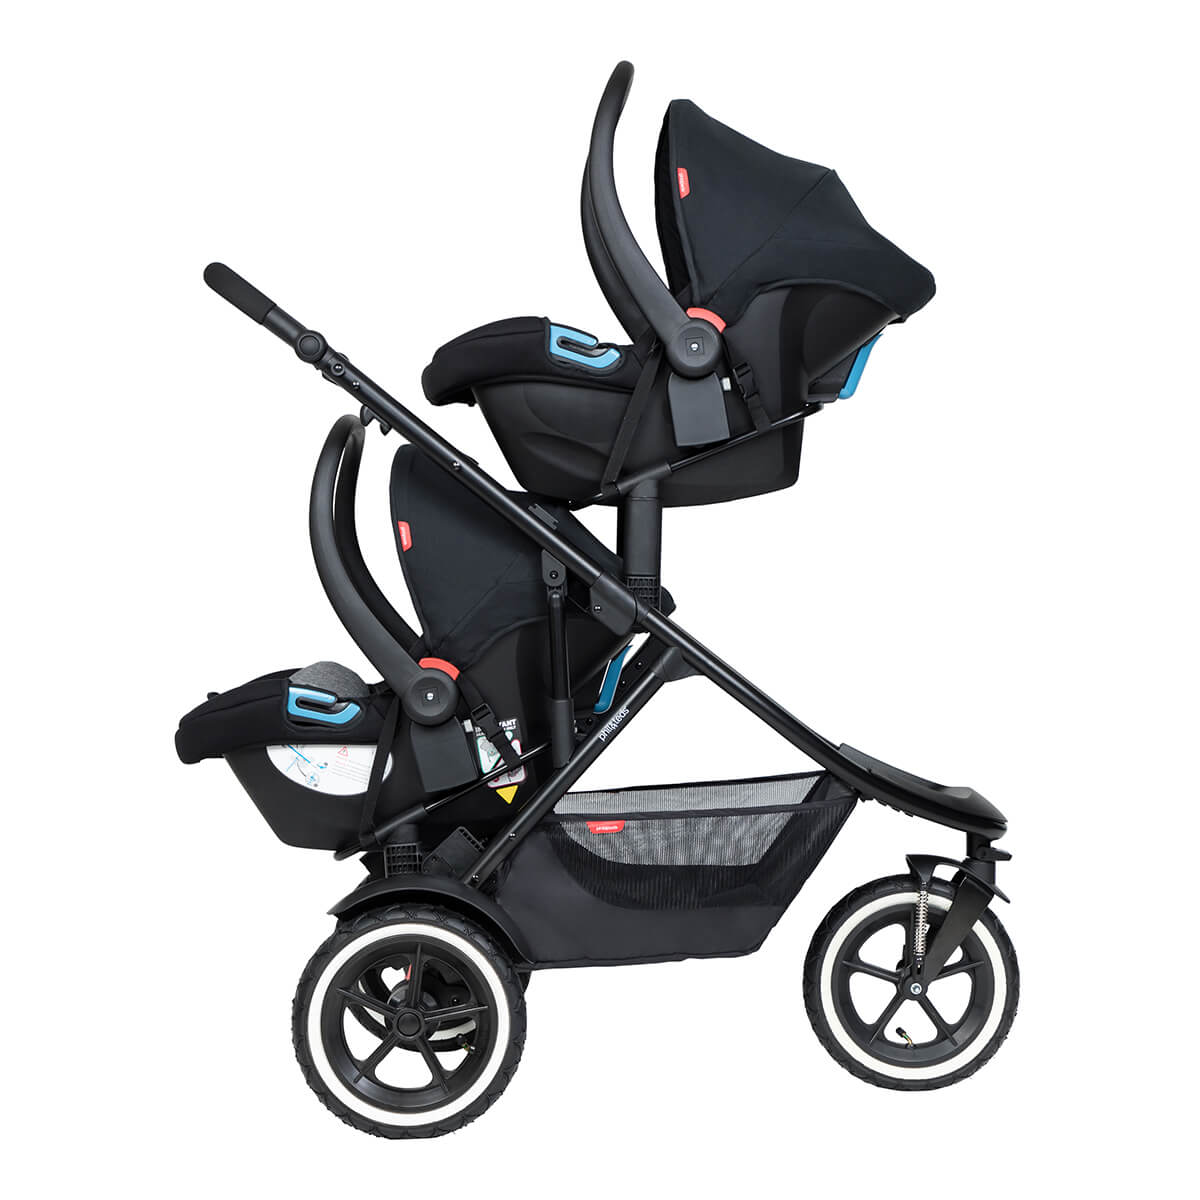 https://cdn.accentuate.io/4546157969513/19119322923113/philteds-sport-buggy-with-double-alpha-travel-system-v1625778326135.jpg?1200x1200